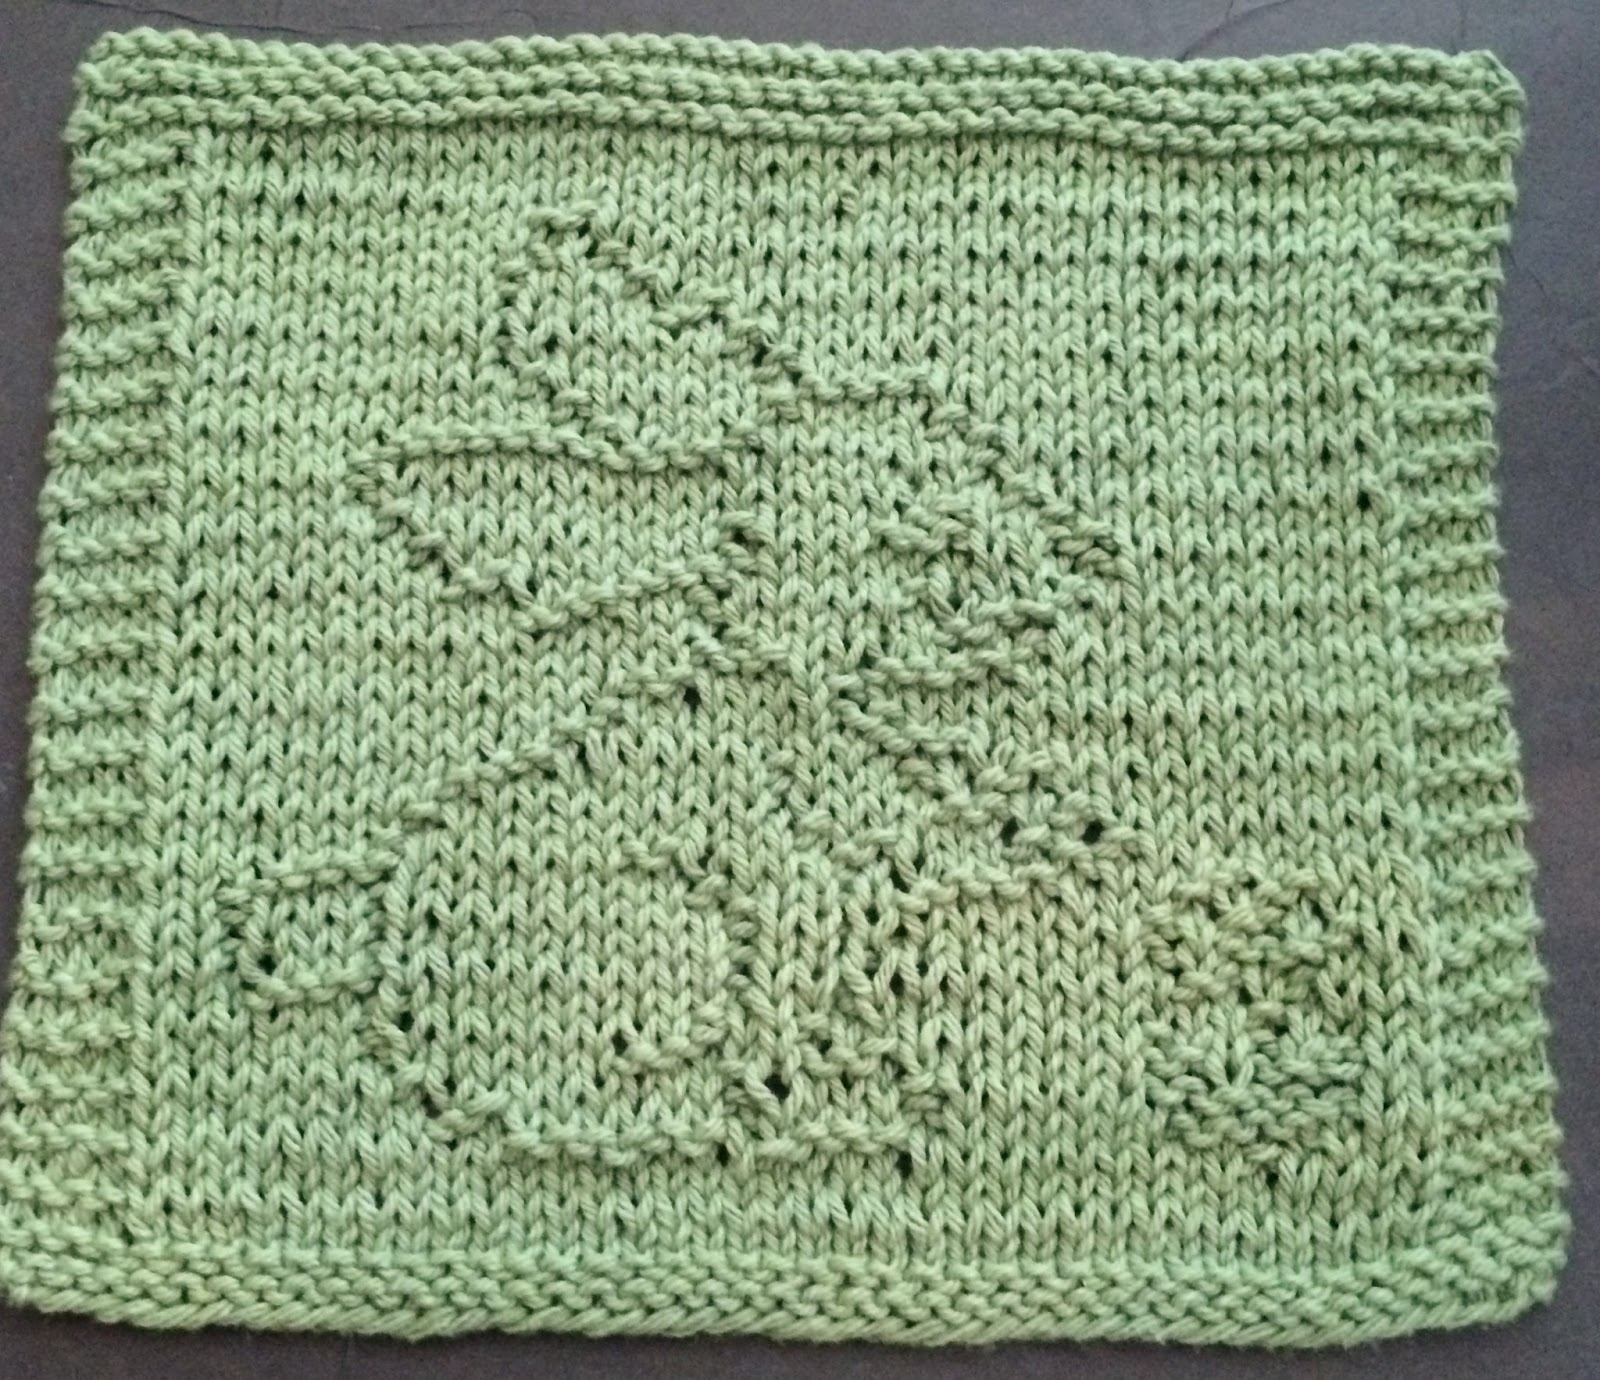 Knitted Dishcloth Patterns For Easter : DigKnitty Designs: Bunny with Flower Knit Dishcloth Pattern